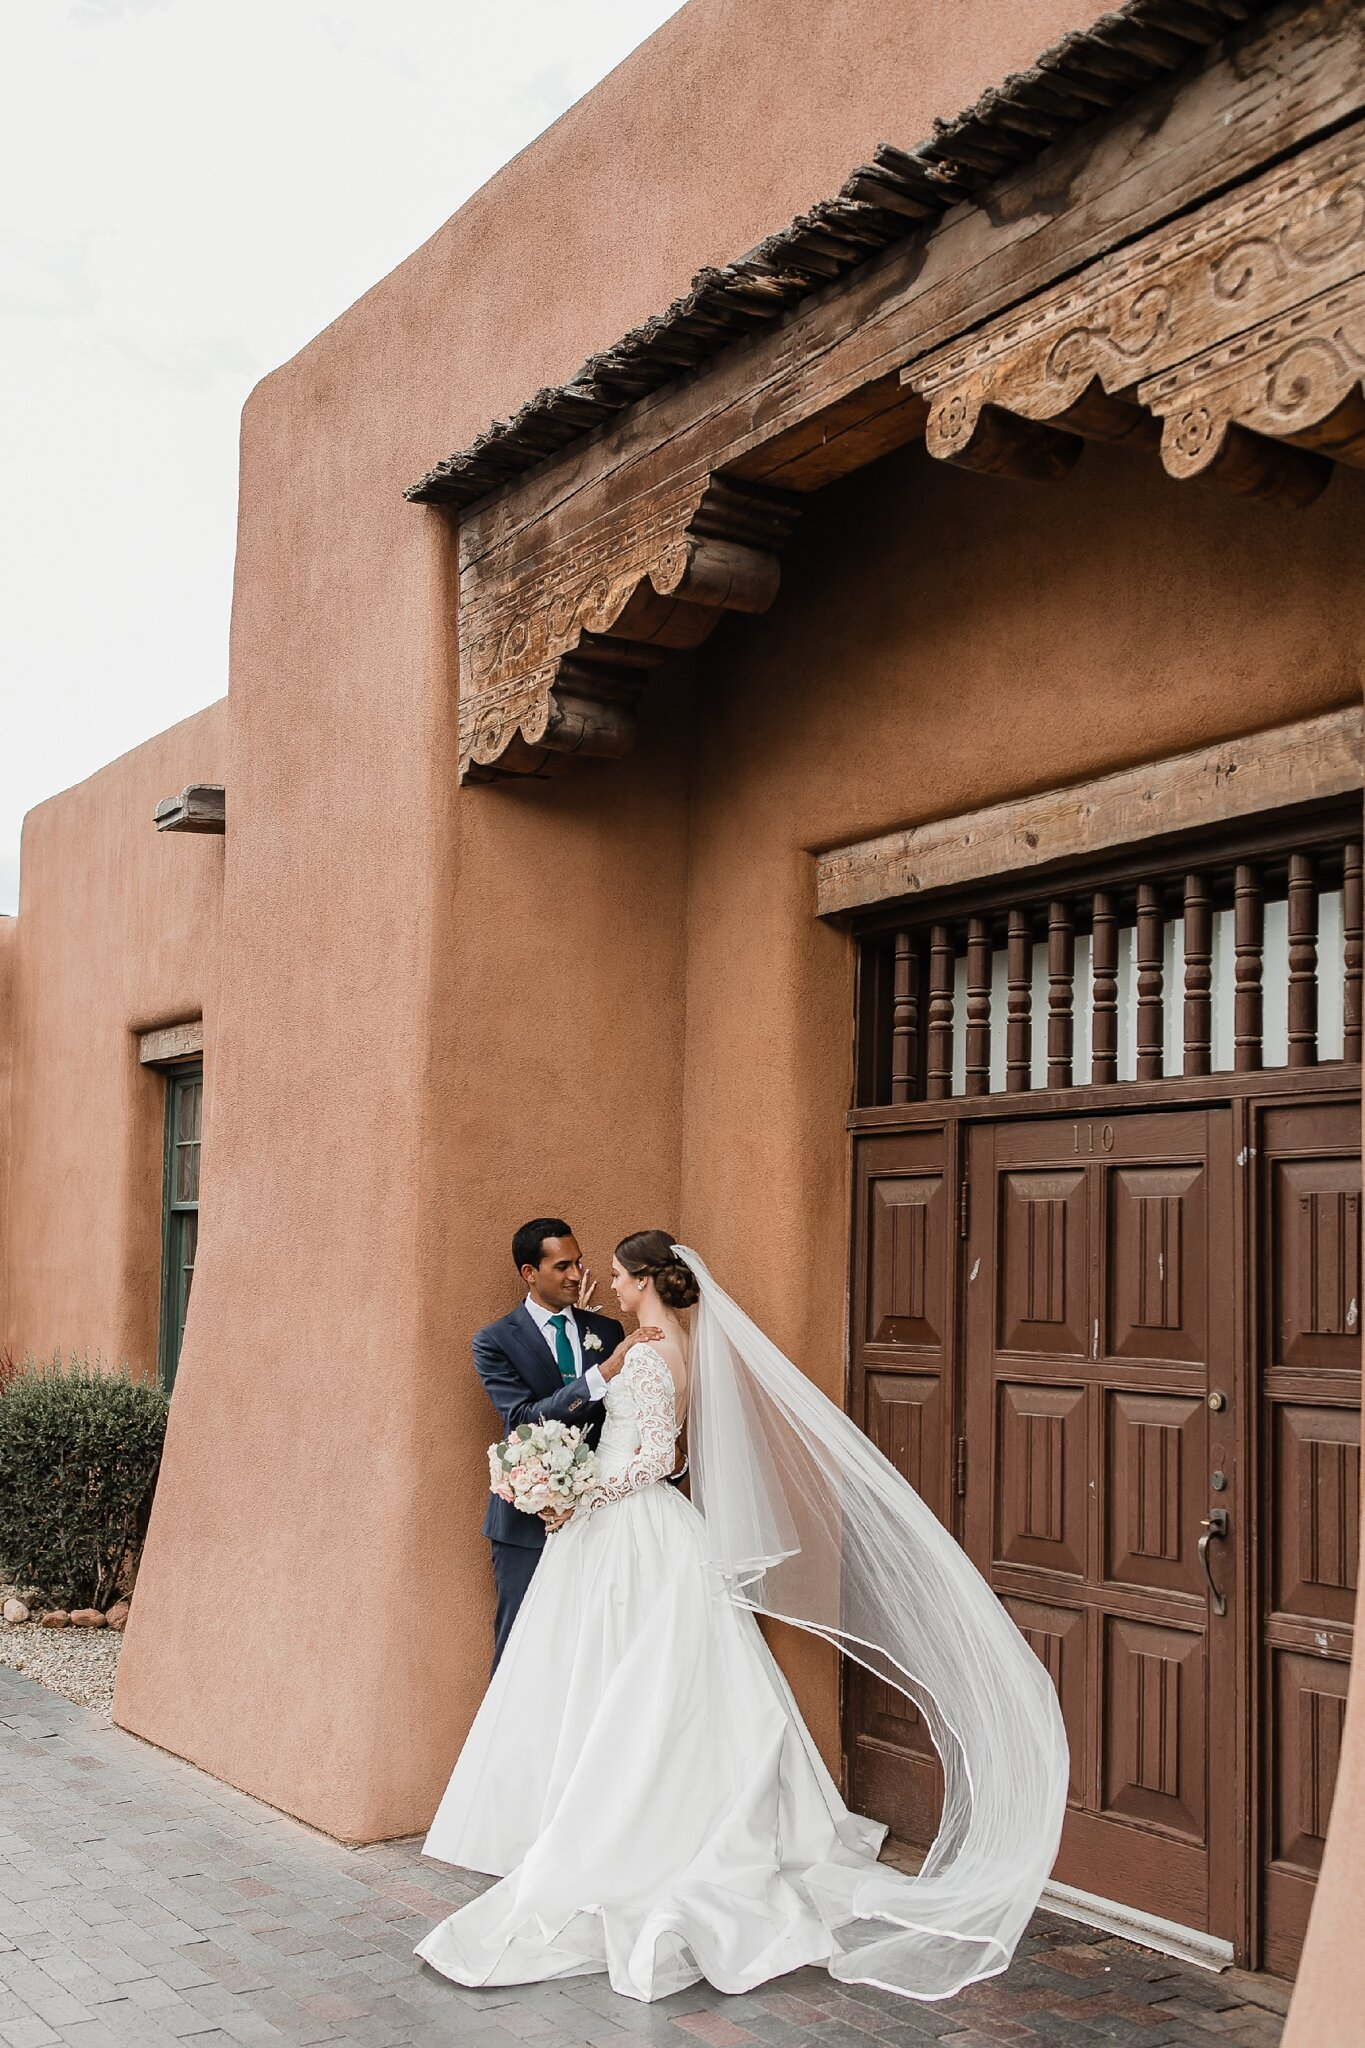 Alicia+lucia+photography+-+albuquerque+wedding+photographer+-+santa+fe+wedding+photography+-+new+mexico+wedding+photographer+-+new+mexico+wedding+-+hindu+wedding+-+catholic+wedding+-+multicultural+wedding+-+santa+fe+wedding_0087.jpg